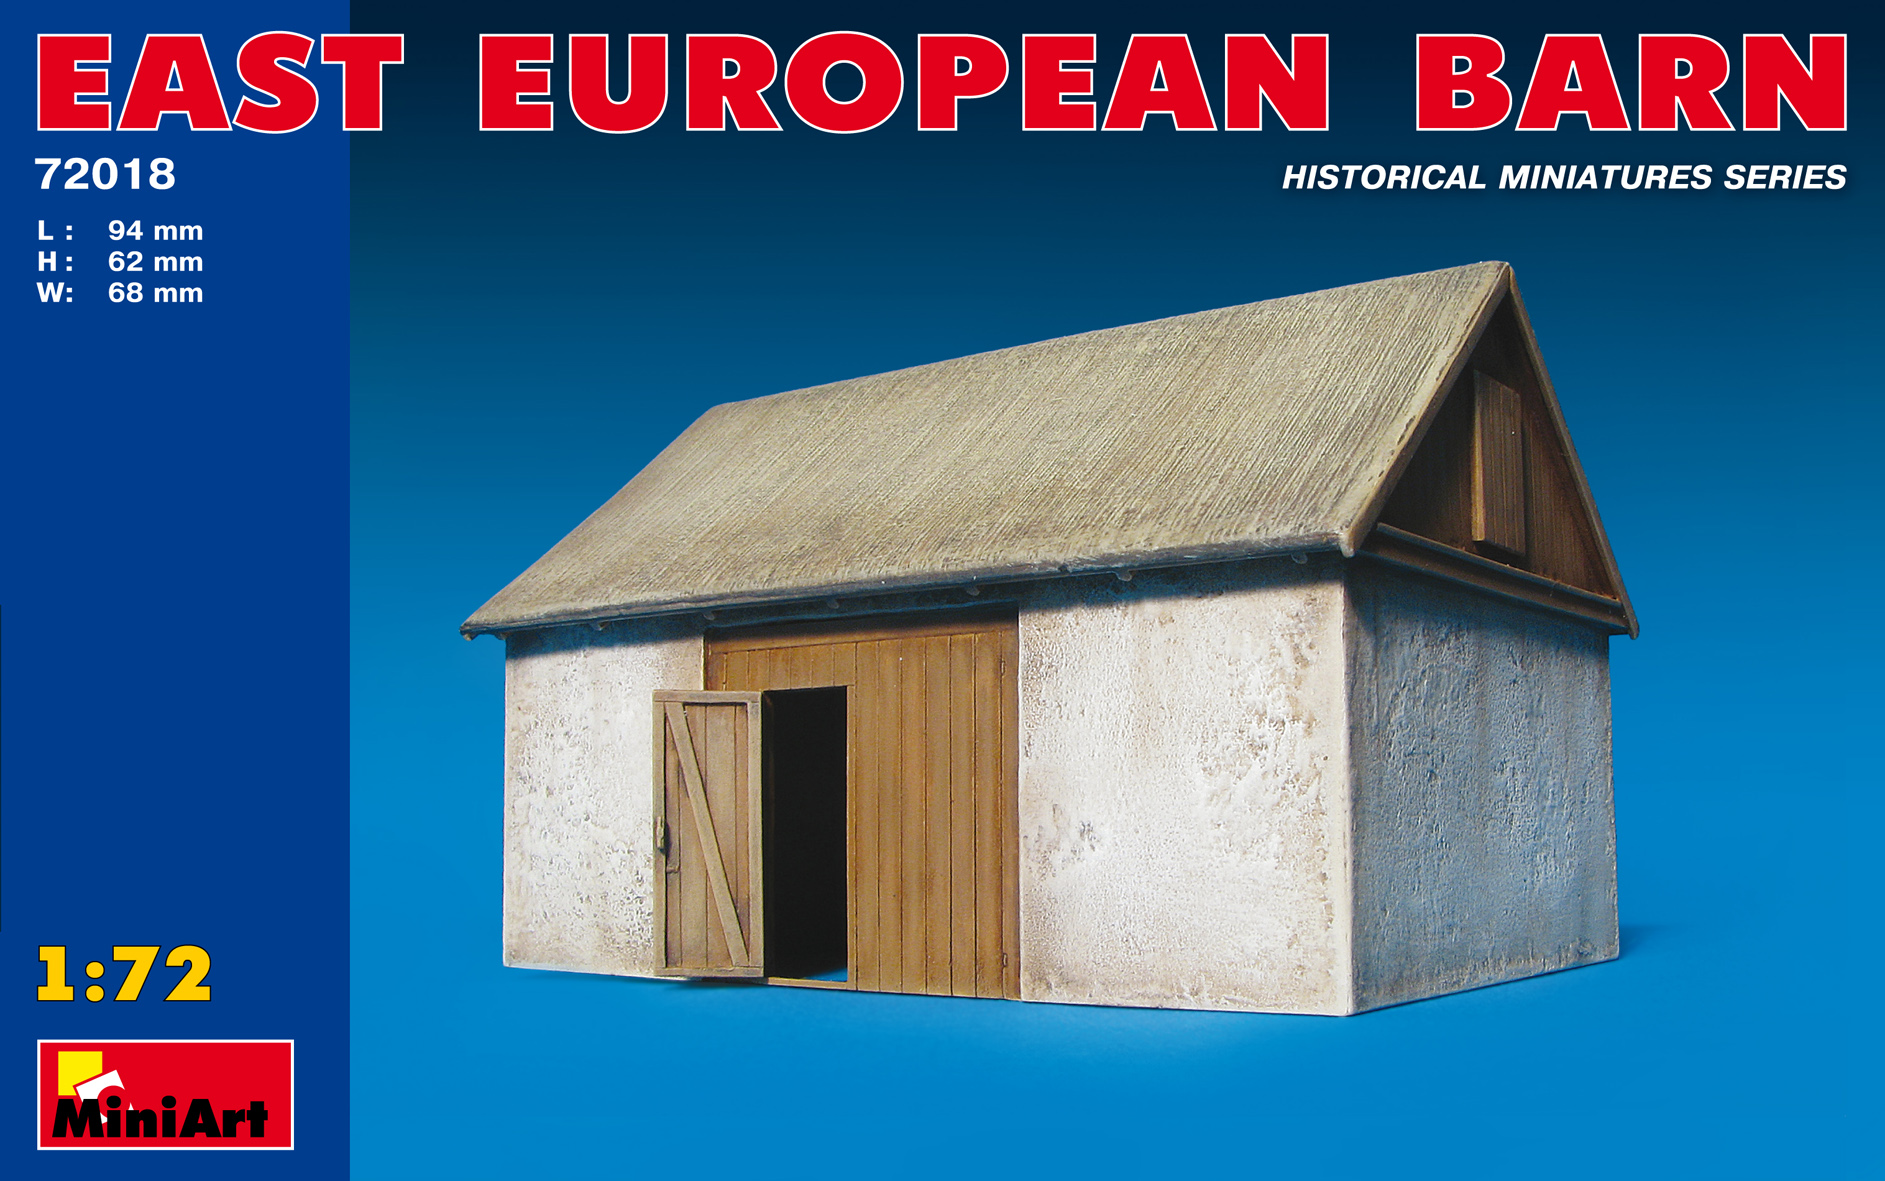 72018 EAST EUROPEAN BARN